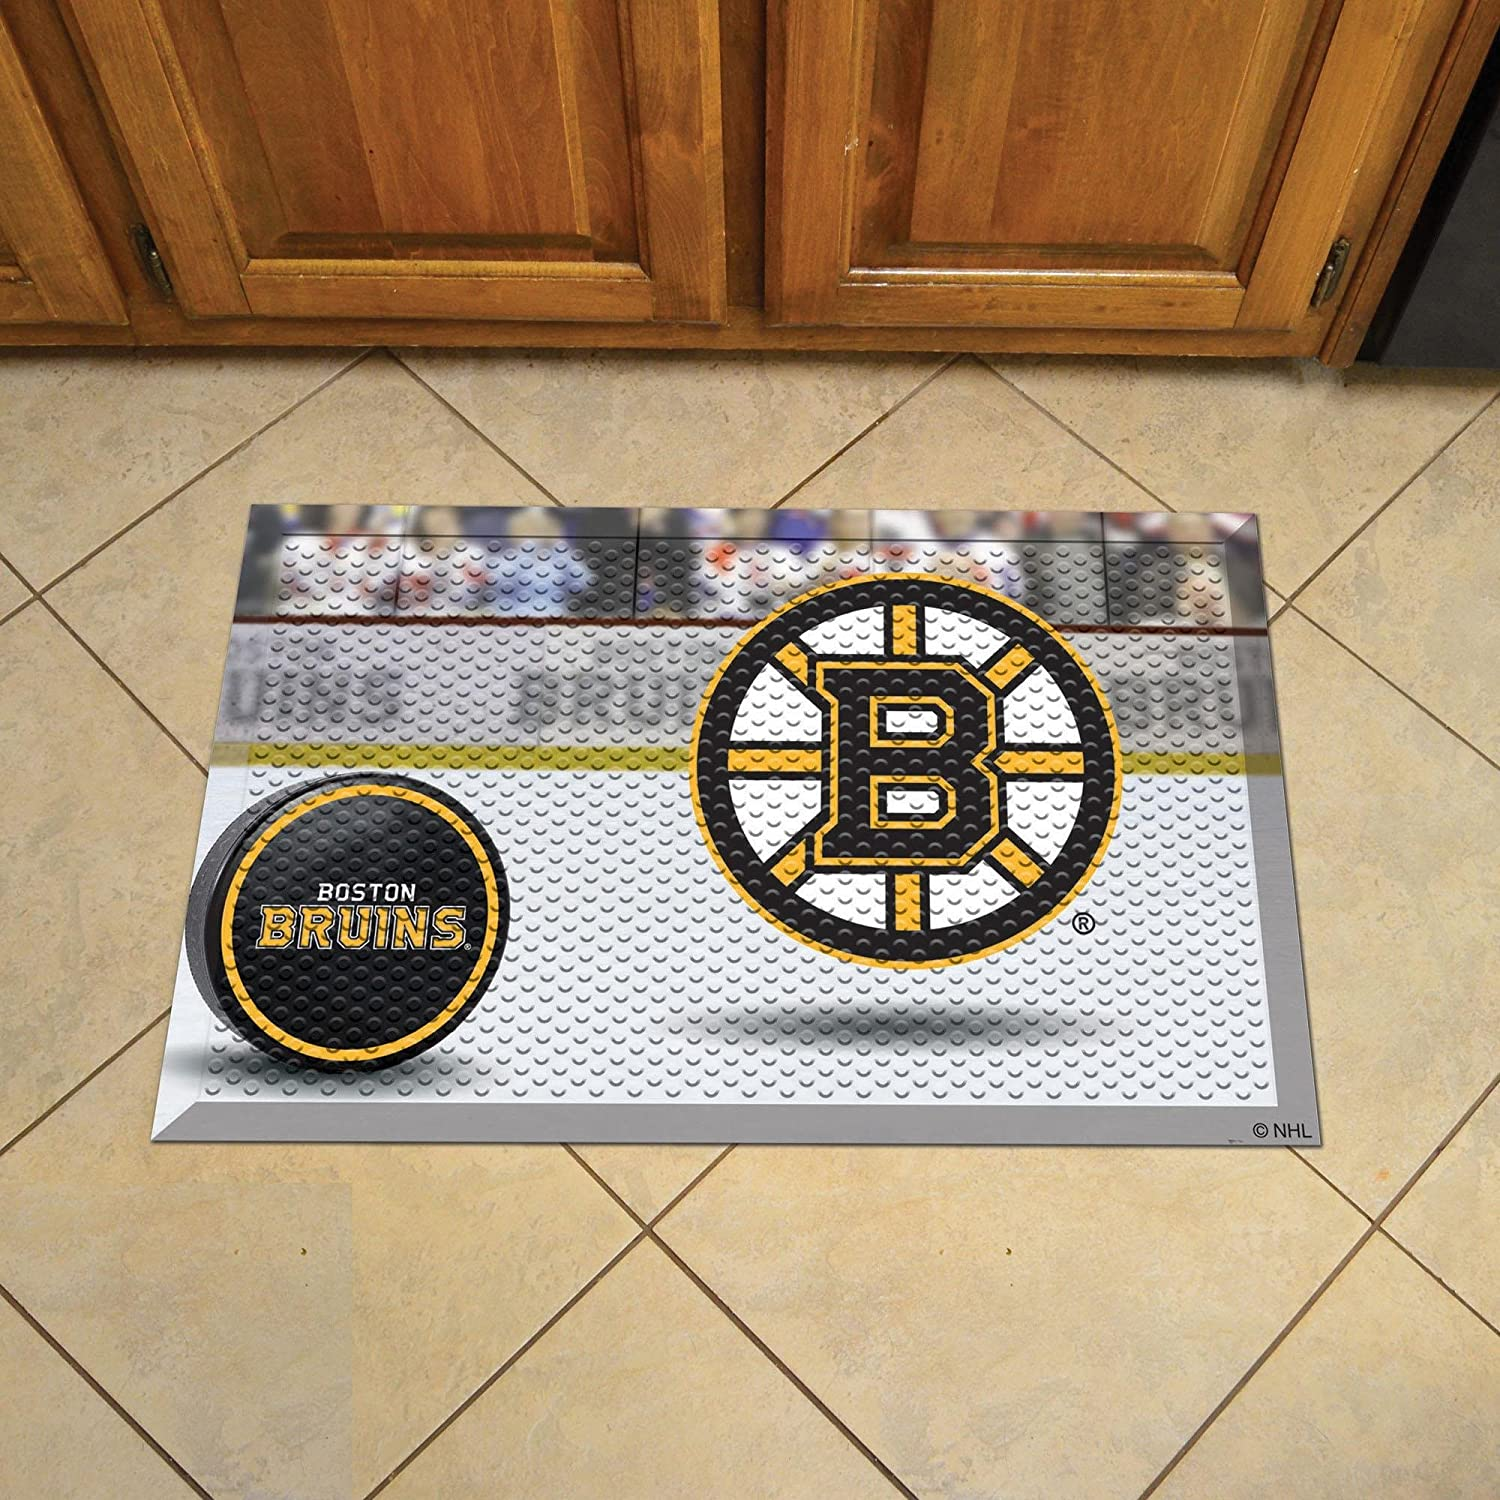 Buy Fanmats 19126 Team Color 19 X 30 Boston Bruins Scraper Mat Nhl Puck Online At Low Prices In India Amazon In